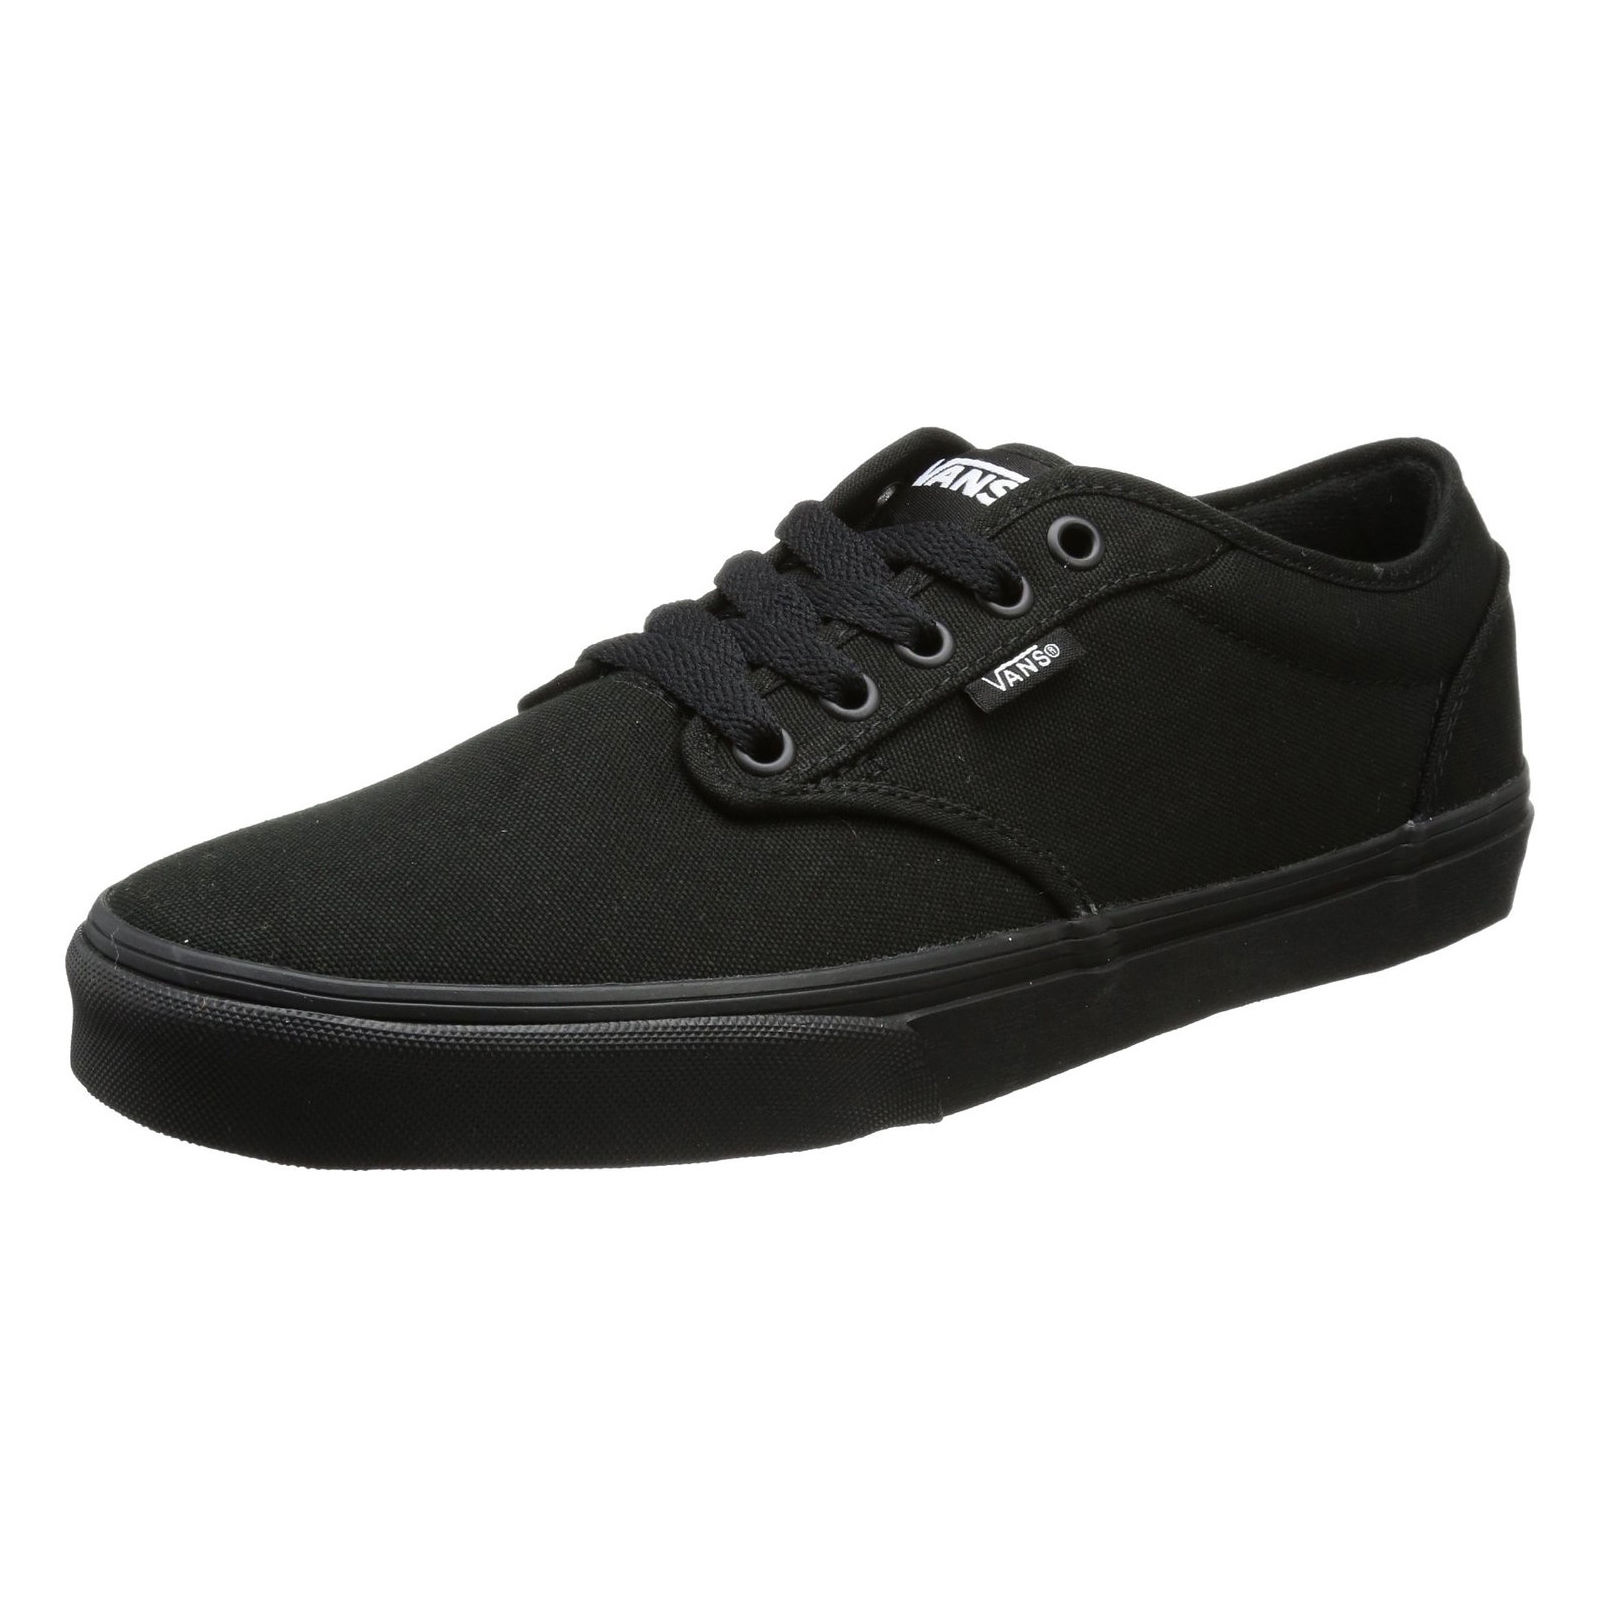 39a7c86c00 Details about VANS Atwood Mens Canvas Skater Trainers Plain Shoes Lace Up  Plimsolls Black